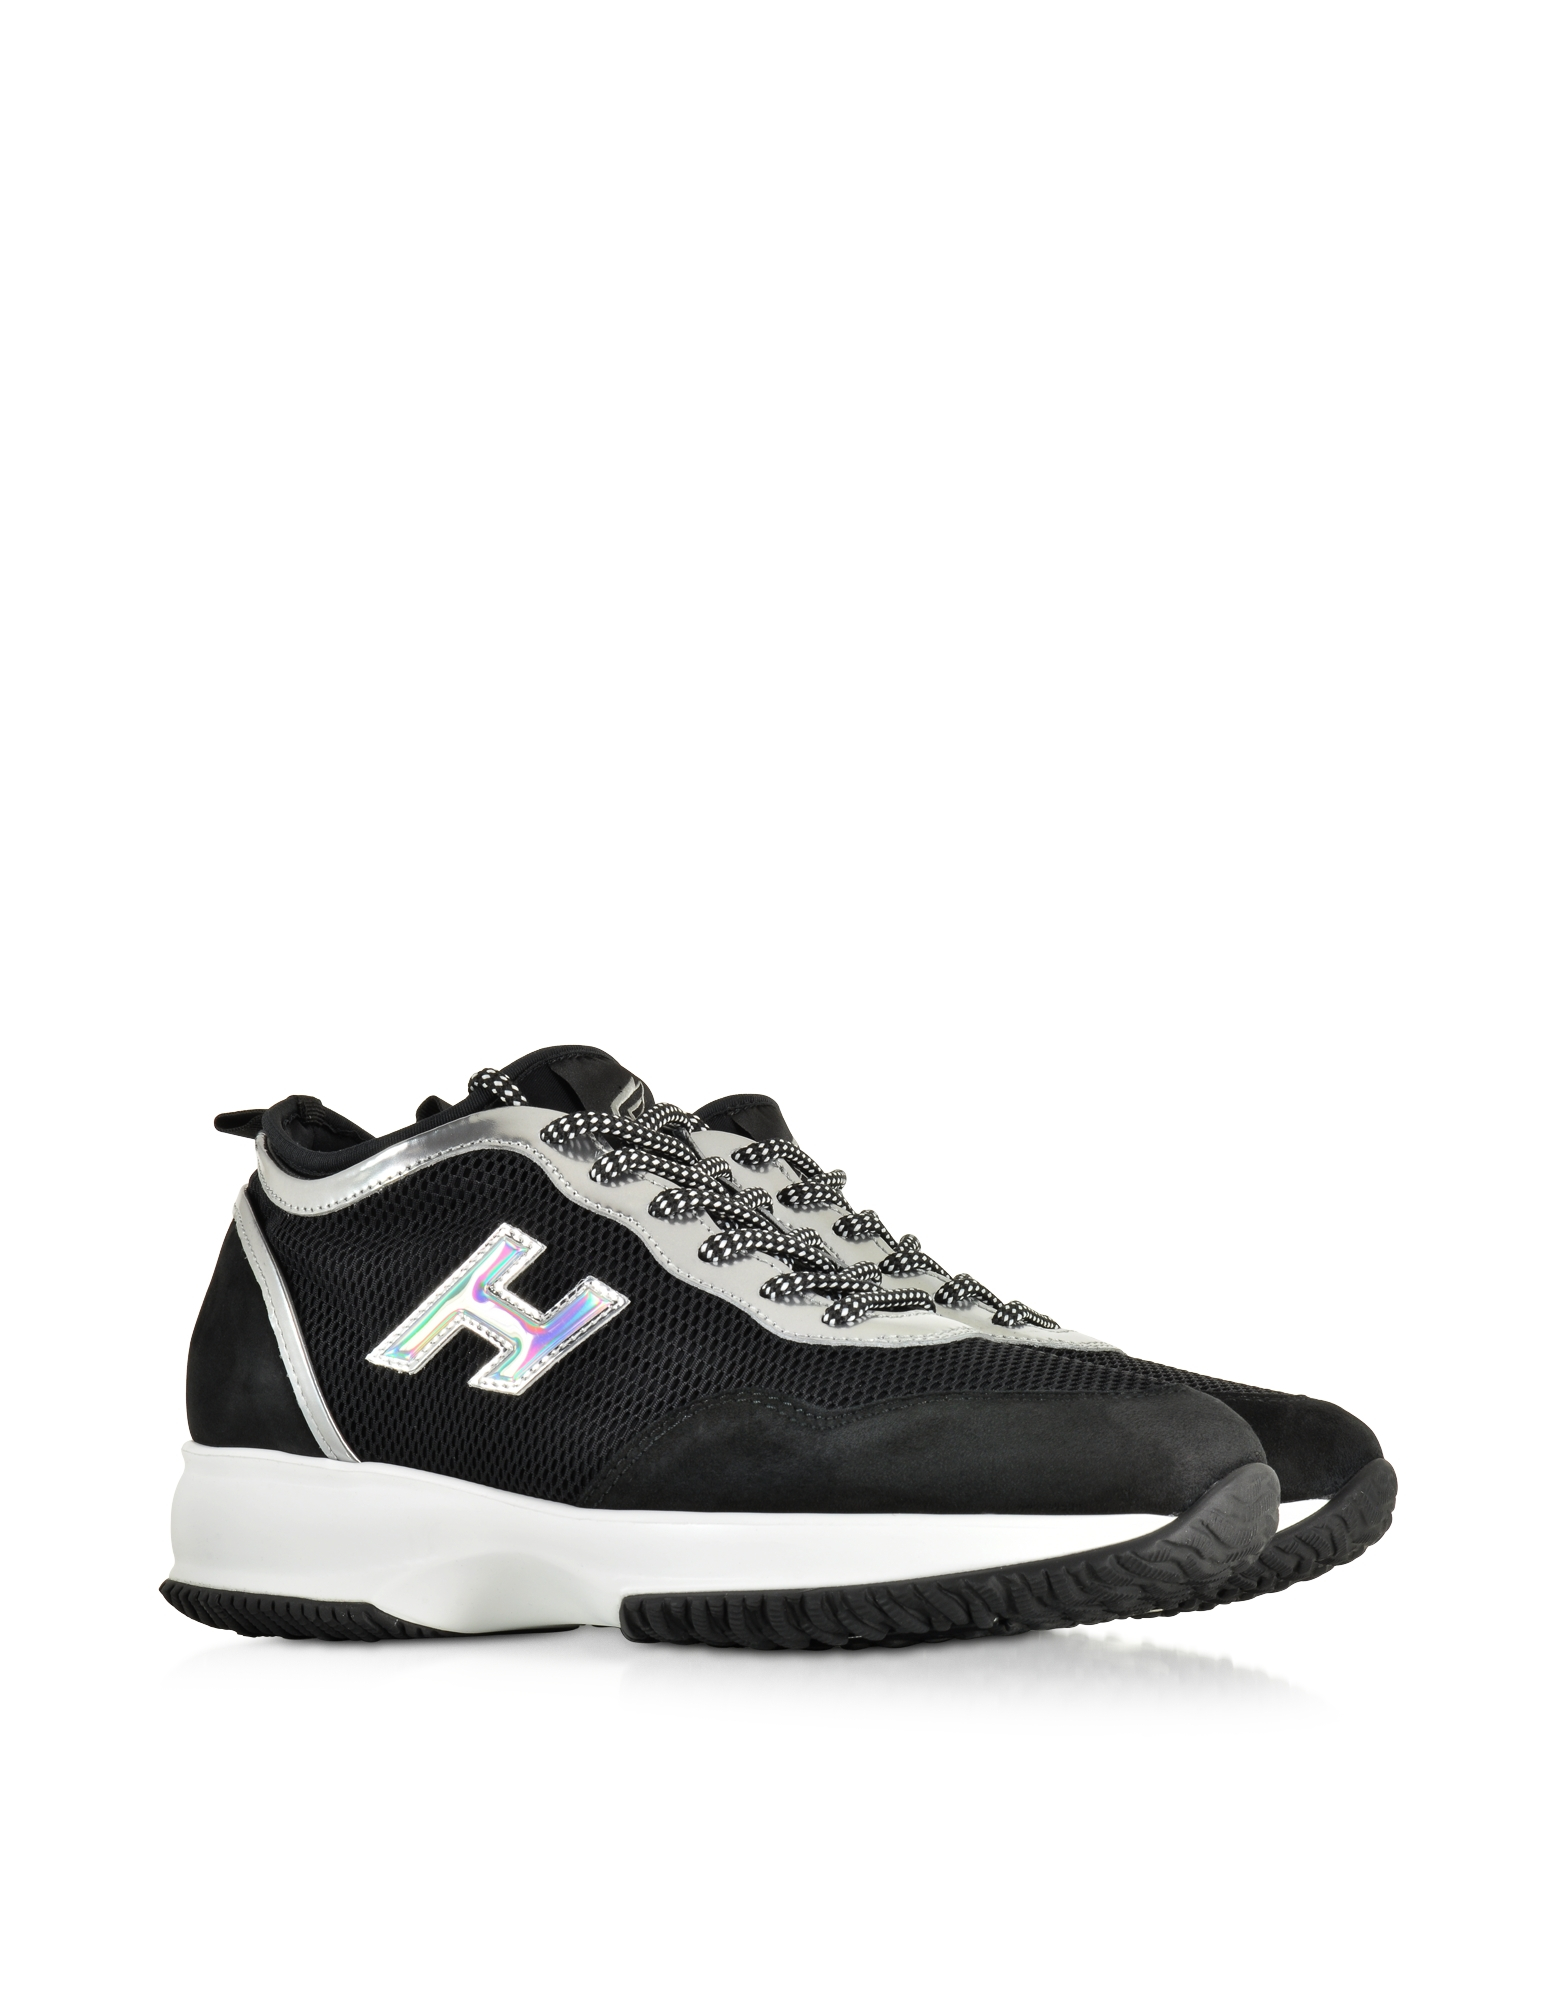 Forzieri Hogan Hogan Interactive Black Fabric And Suede Sneaker In Black